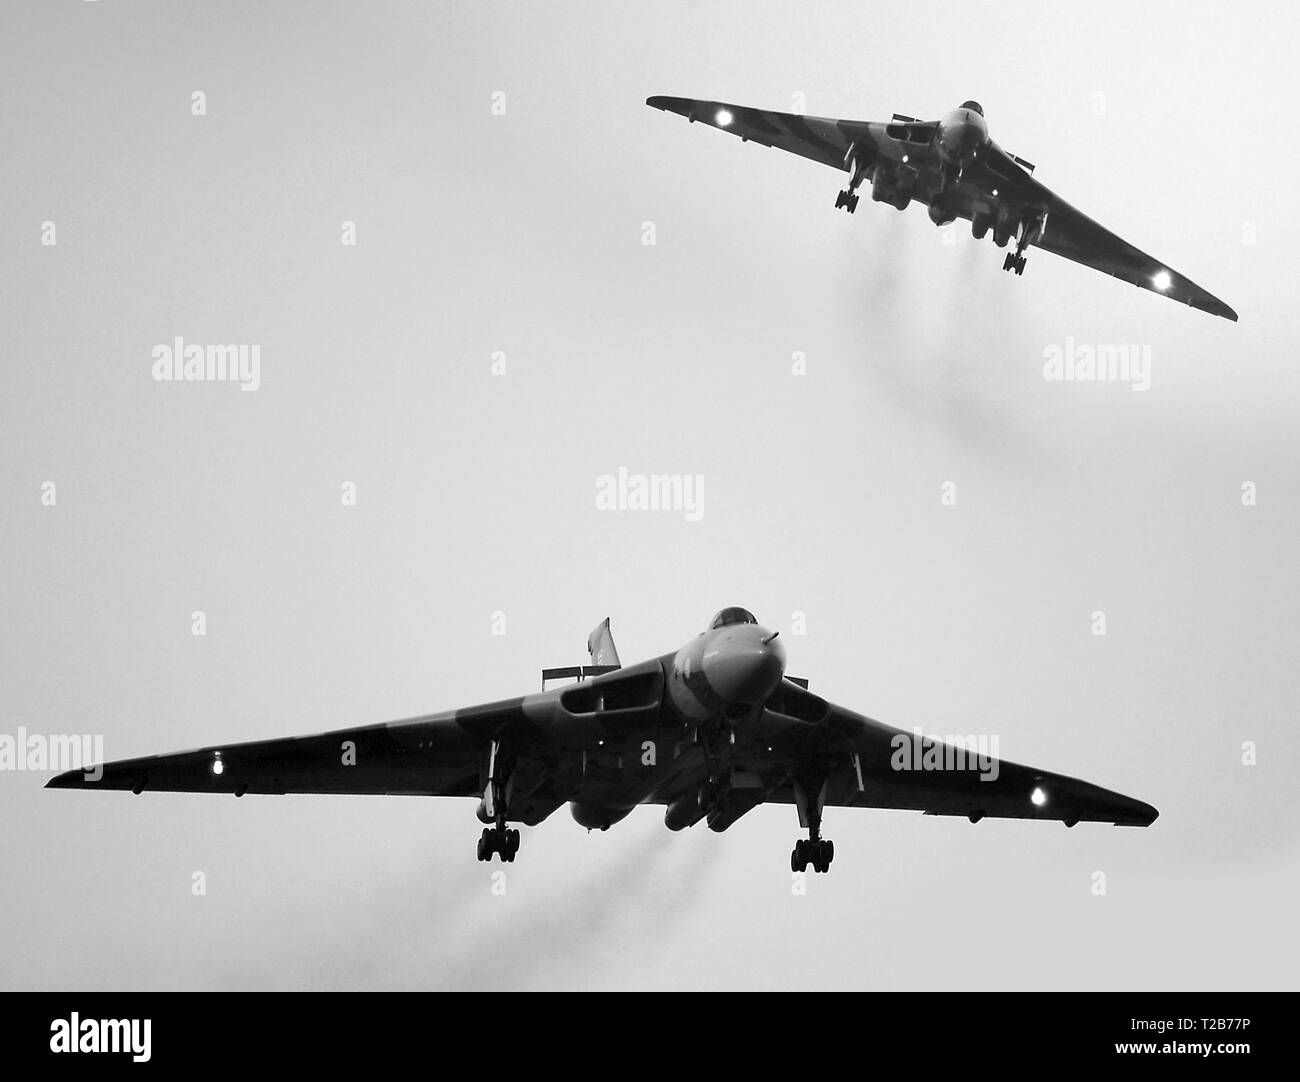 Avro Vulcan, cold war nuclear bomber - Stock Image